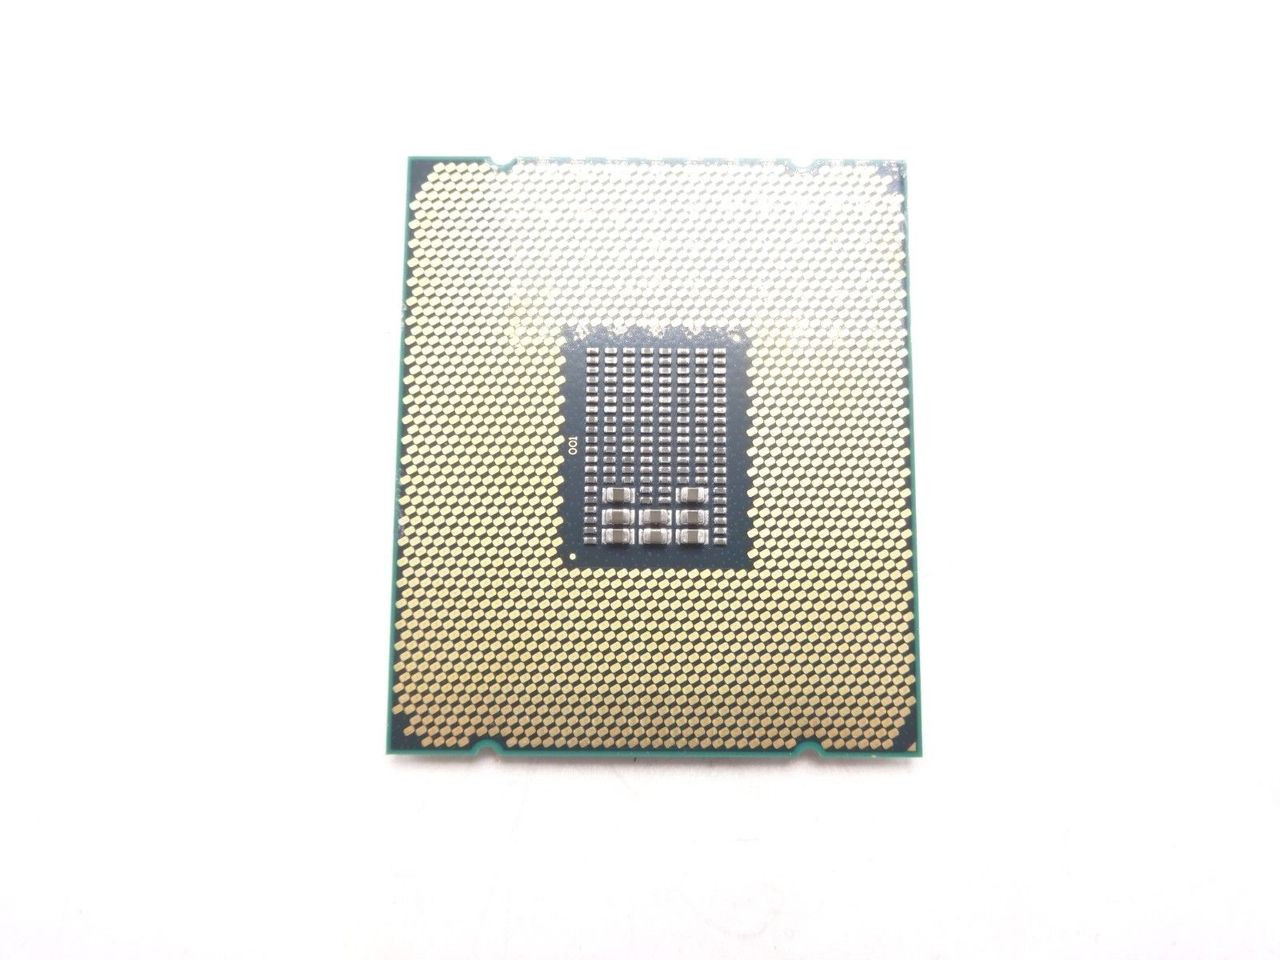 Intel SR2P0 Xeon E5-2603V4 6C 1.7Ghz 15MB Processor